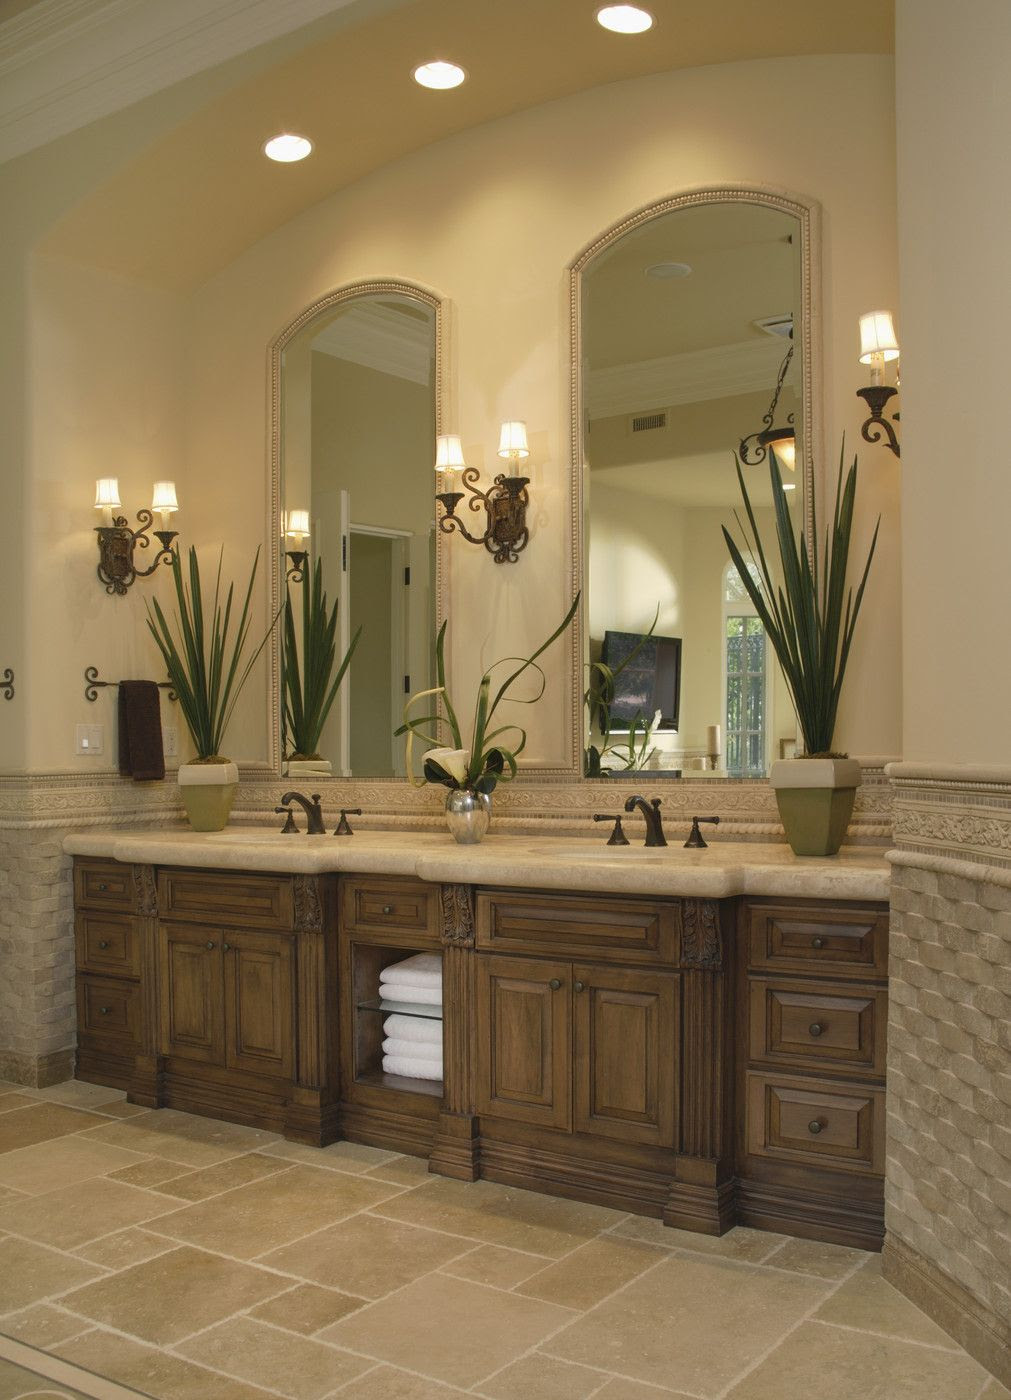 Bathroom Mirrors With Lights In Them New Blue Bathroom Mirrors With Lights In Them Baby Shower Ideas